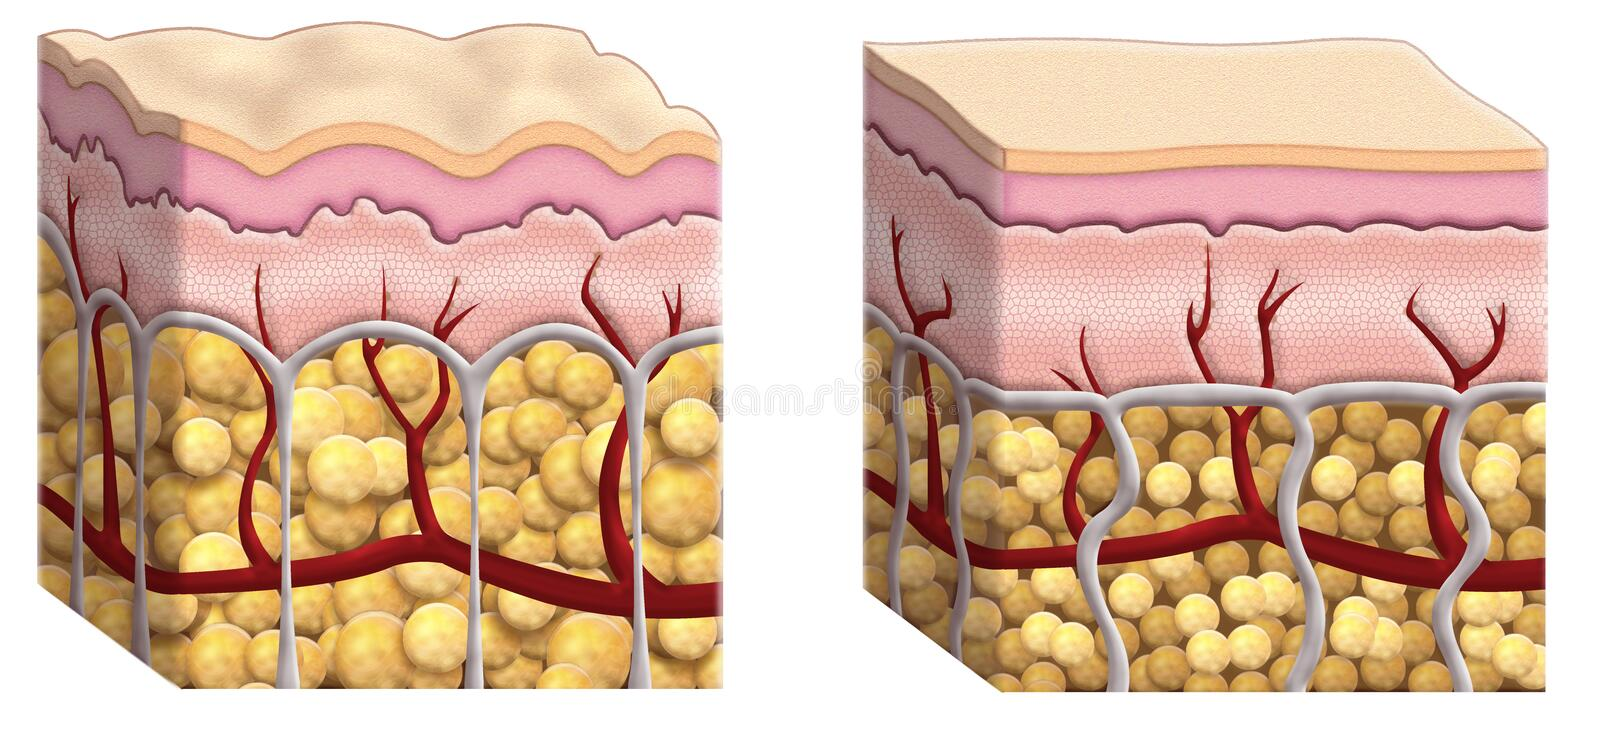 Download Cellulite cross section stock illustration. Illustration of surface - 1670947